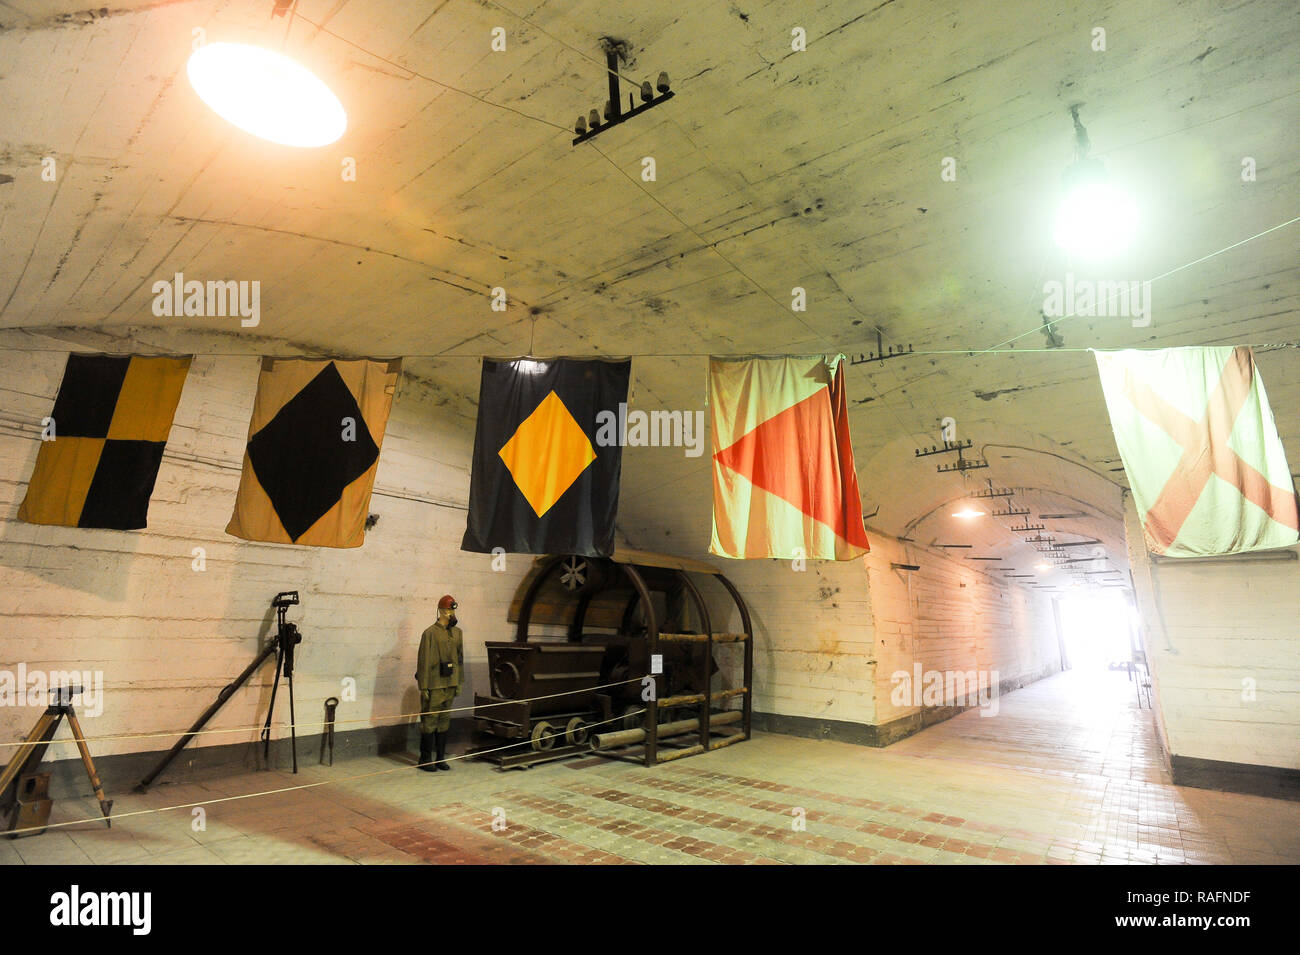 Morskij Muziejnyj Komplieks Balaklava (Naval museum complex Balaklava) in Balaklava, Crimea, Ukraine. September 30th 2008, in post Soviet classified u - Stock Image